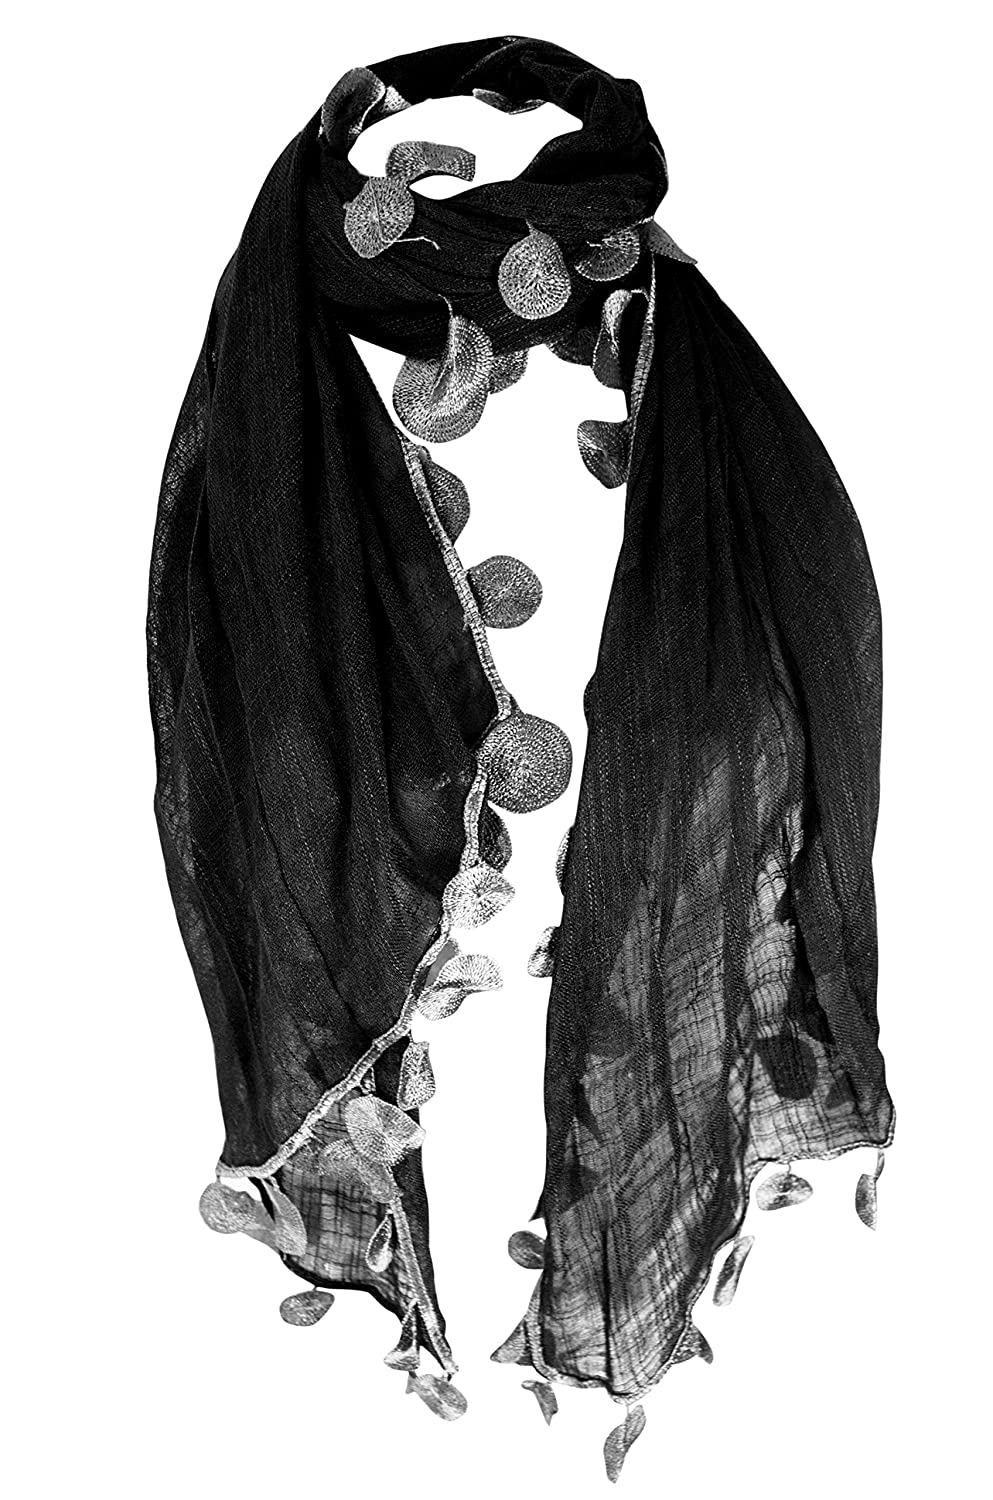 3f8182f93 Peach Couture All Seasons Chic Silk Feel Sheer Textured Scarf W/ Sphere  Tassels (Black) at Amazon Women's Clothing store: